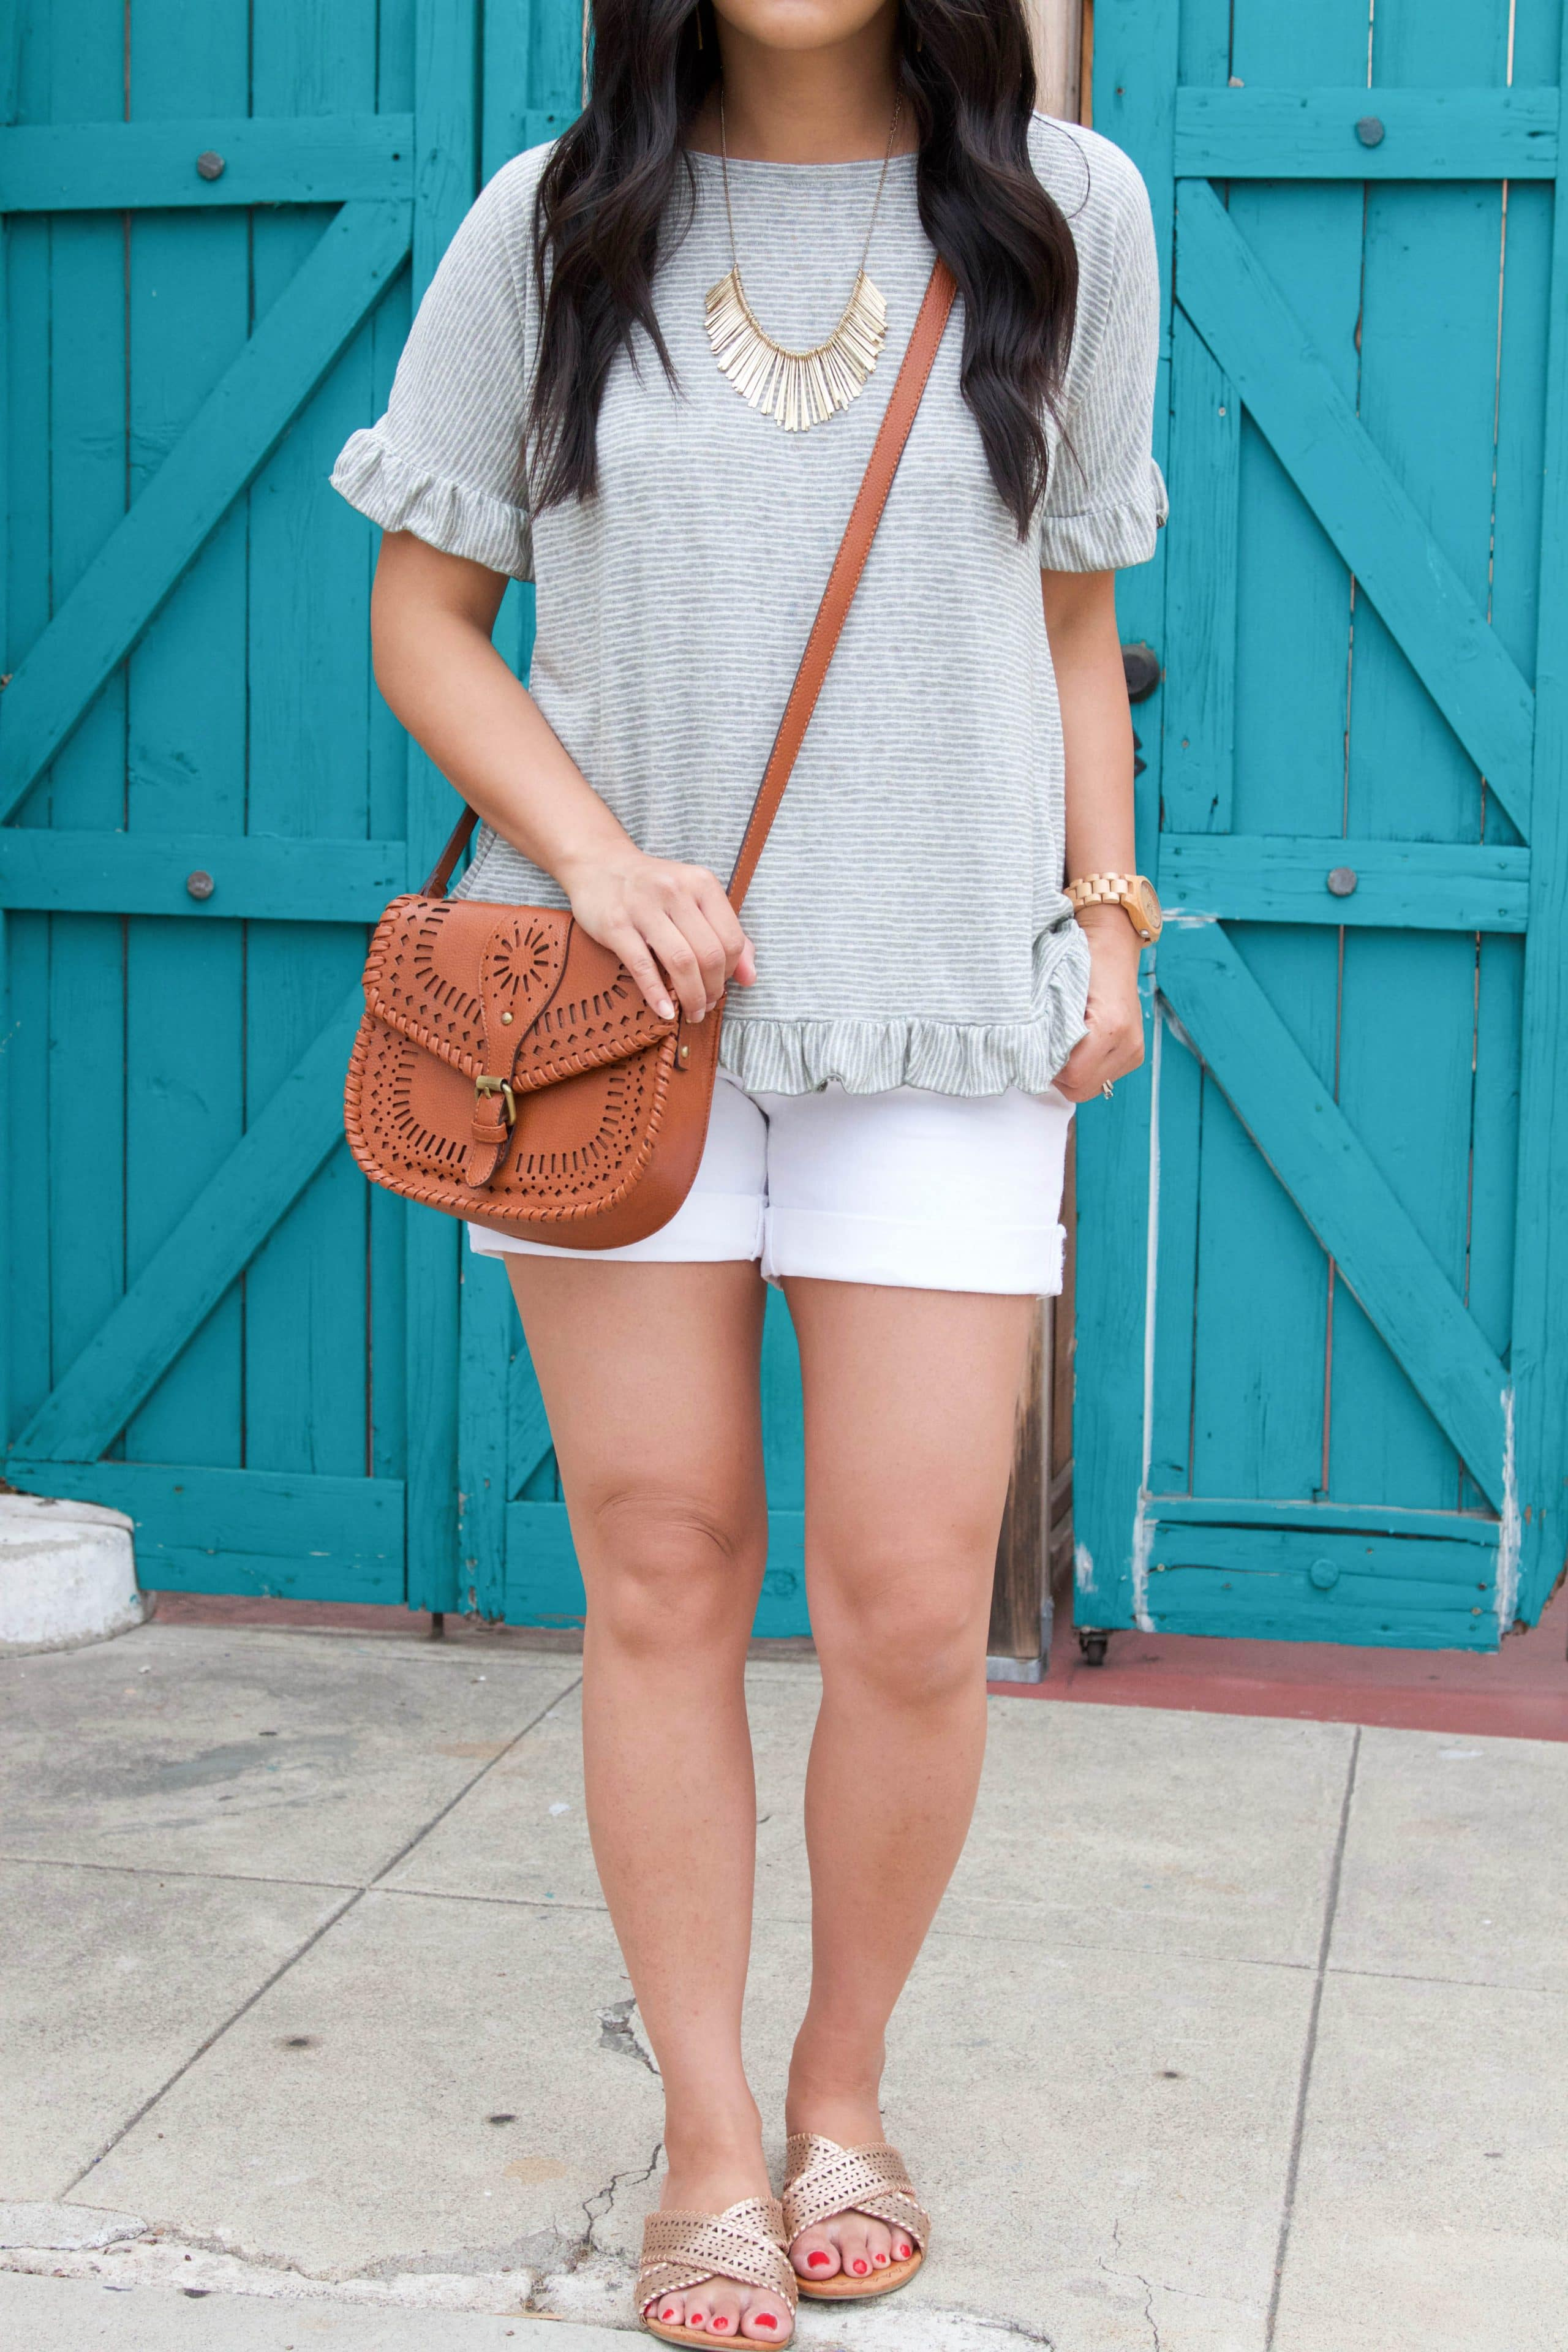 Gold Slides + Gold Necklace + Ruffle Top + White Shorts